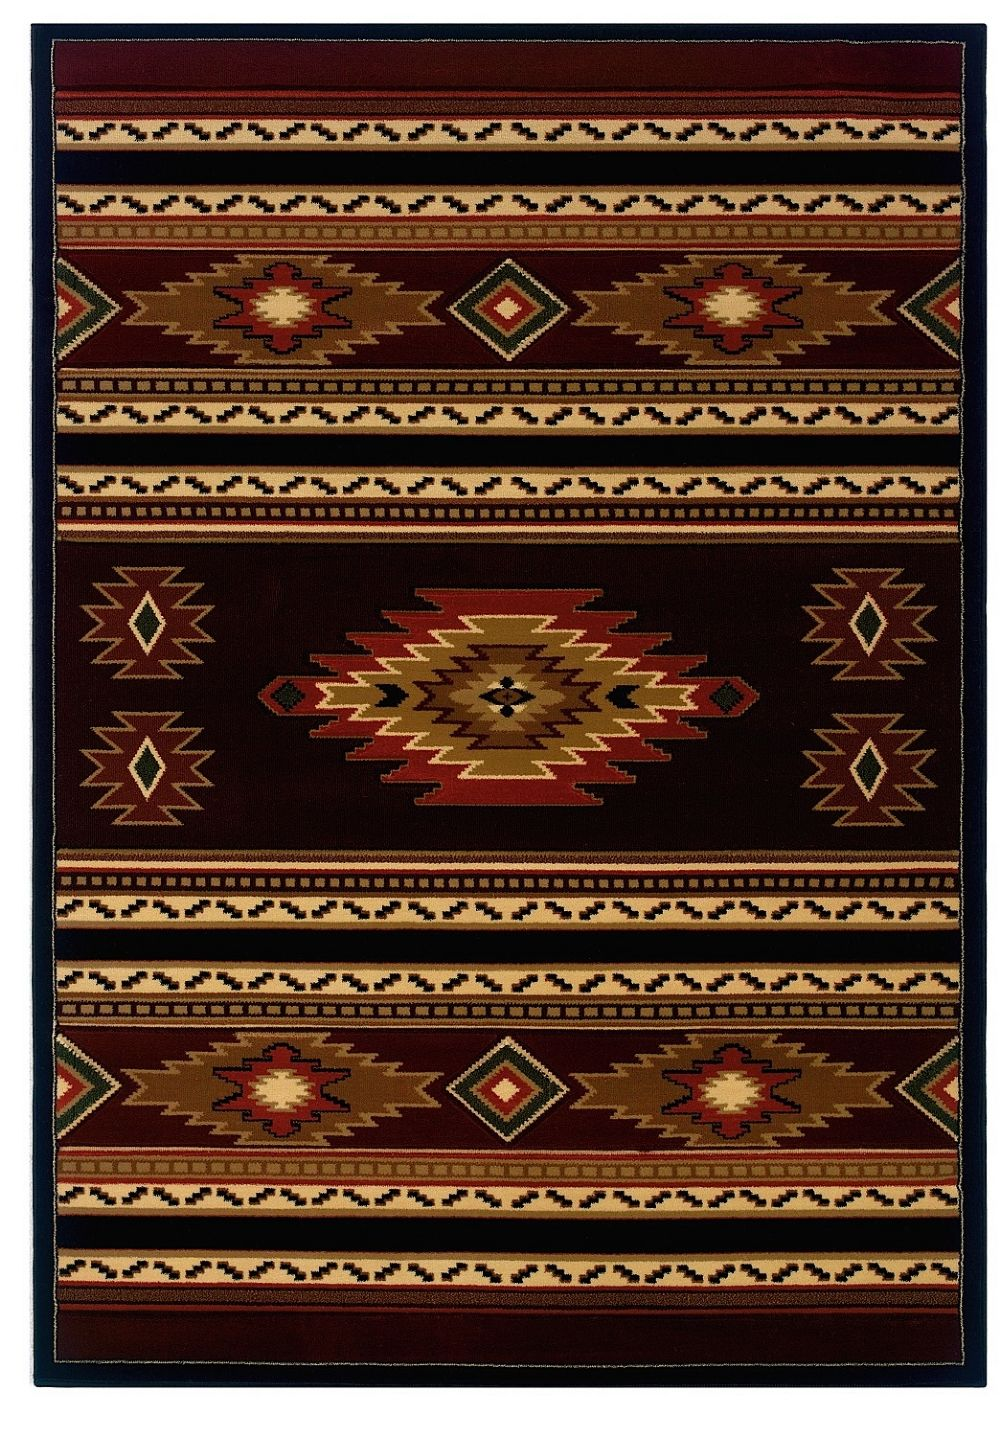 united weavers contours-cem southwestern/lodge area rug collection